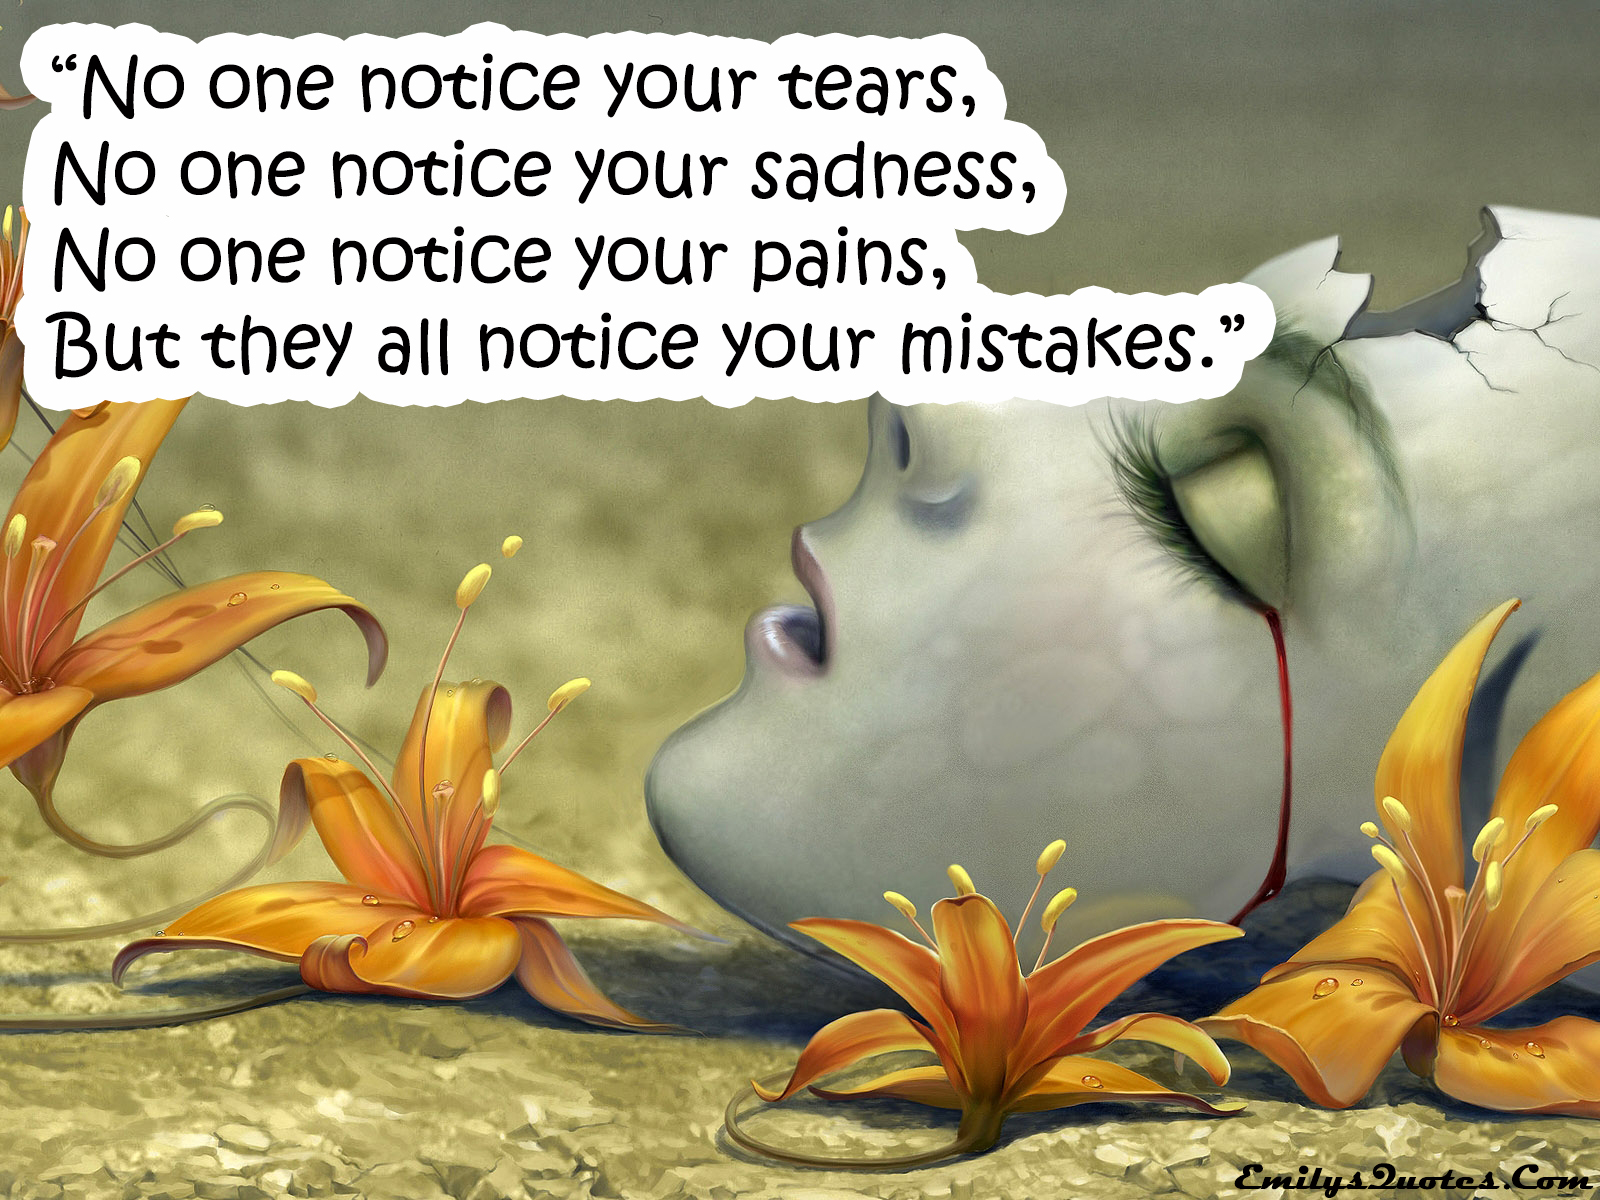 U201cNo One Notice Your Tears, No One Notice Your Sadness, No One Notice Your  Pains, But They All Notice Your Mistakes.u201d